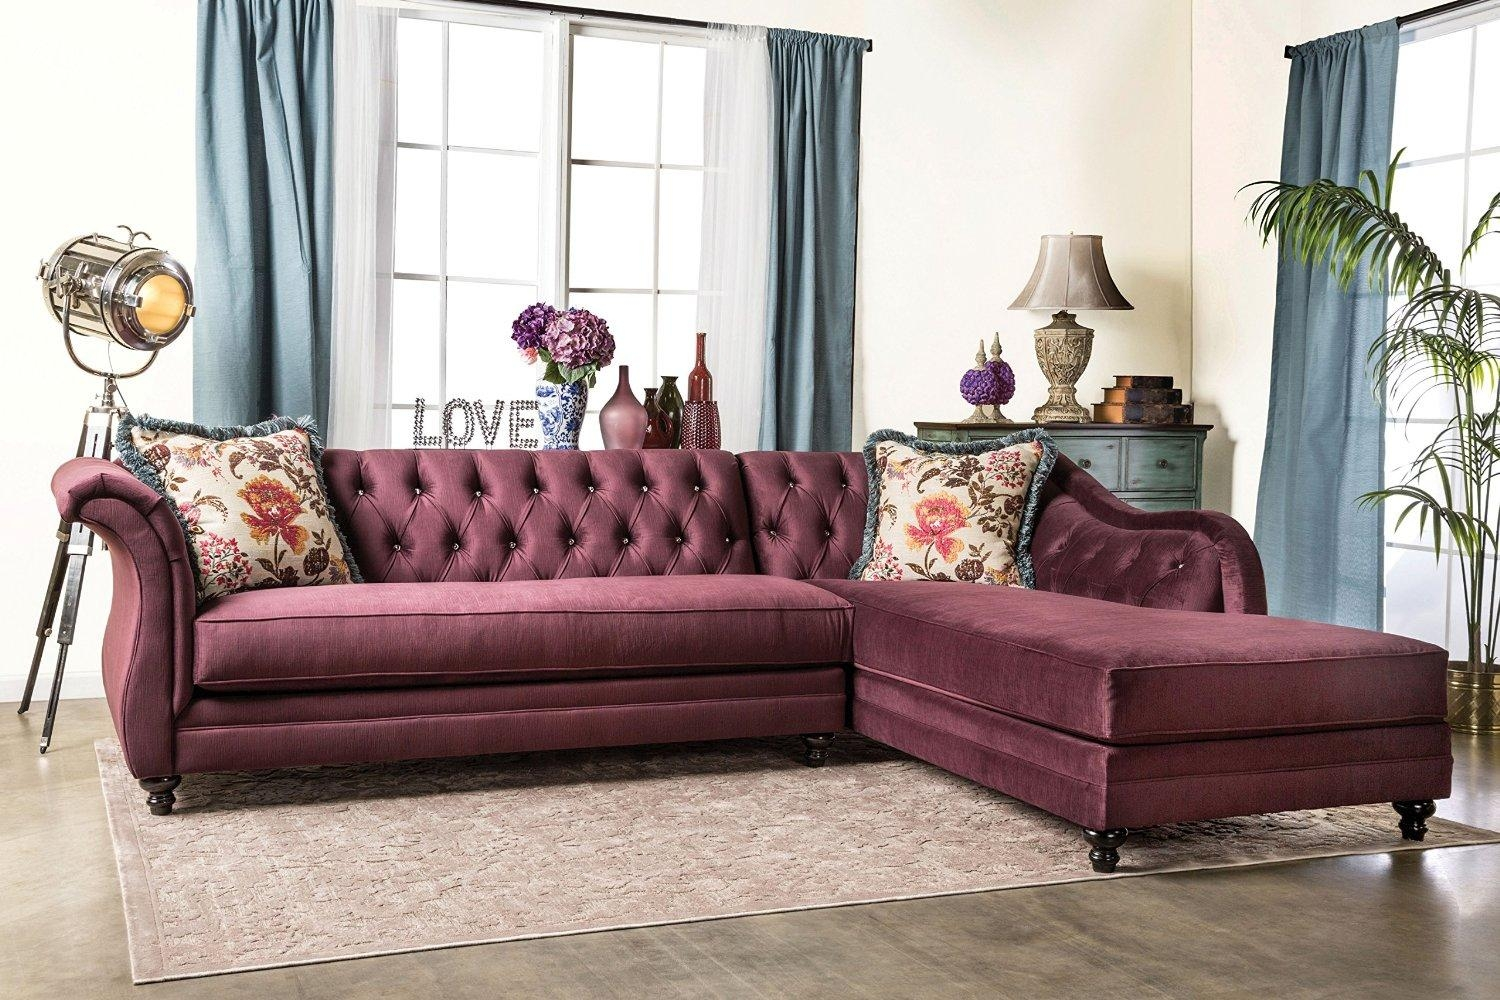 25 Best Chesterfield Sofas To Buy In 2017 With Regard To Tufted Leather Chesterfield Sofas (View 6 of 20)